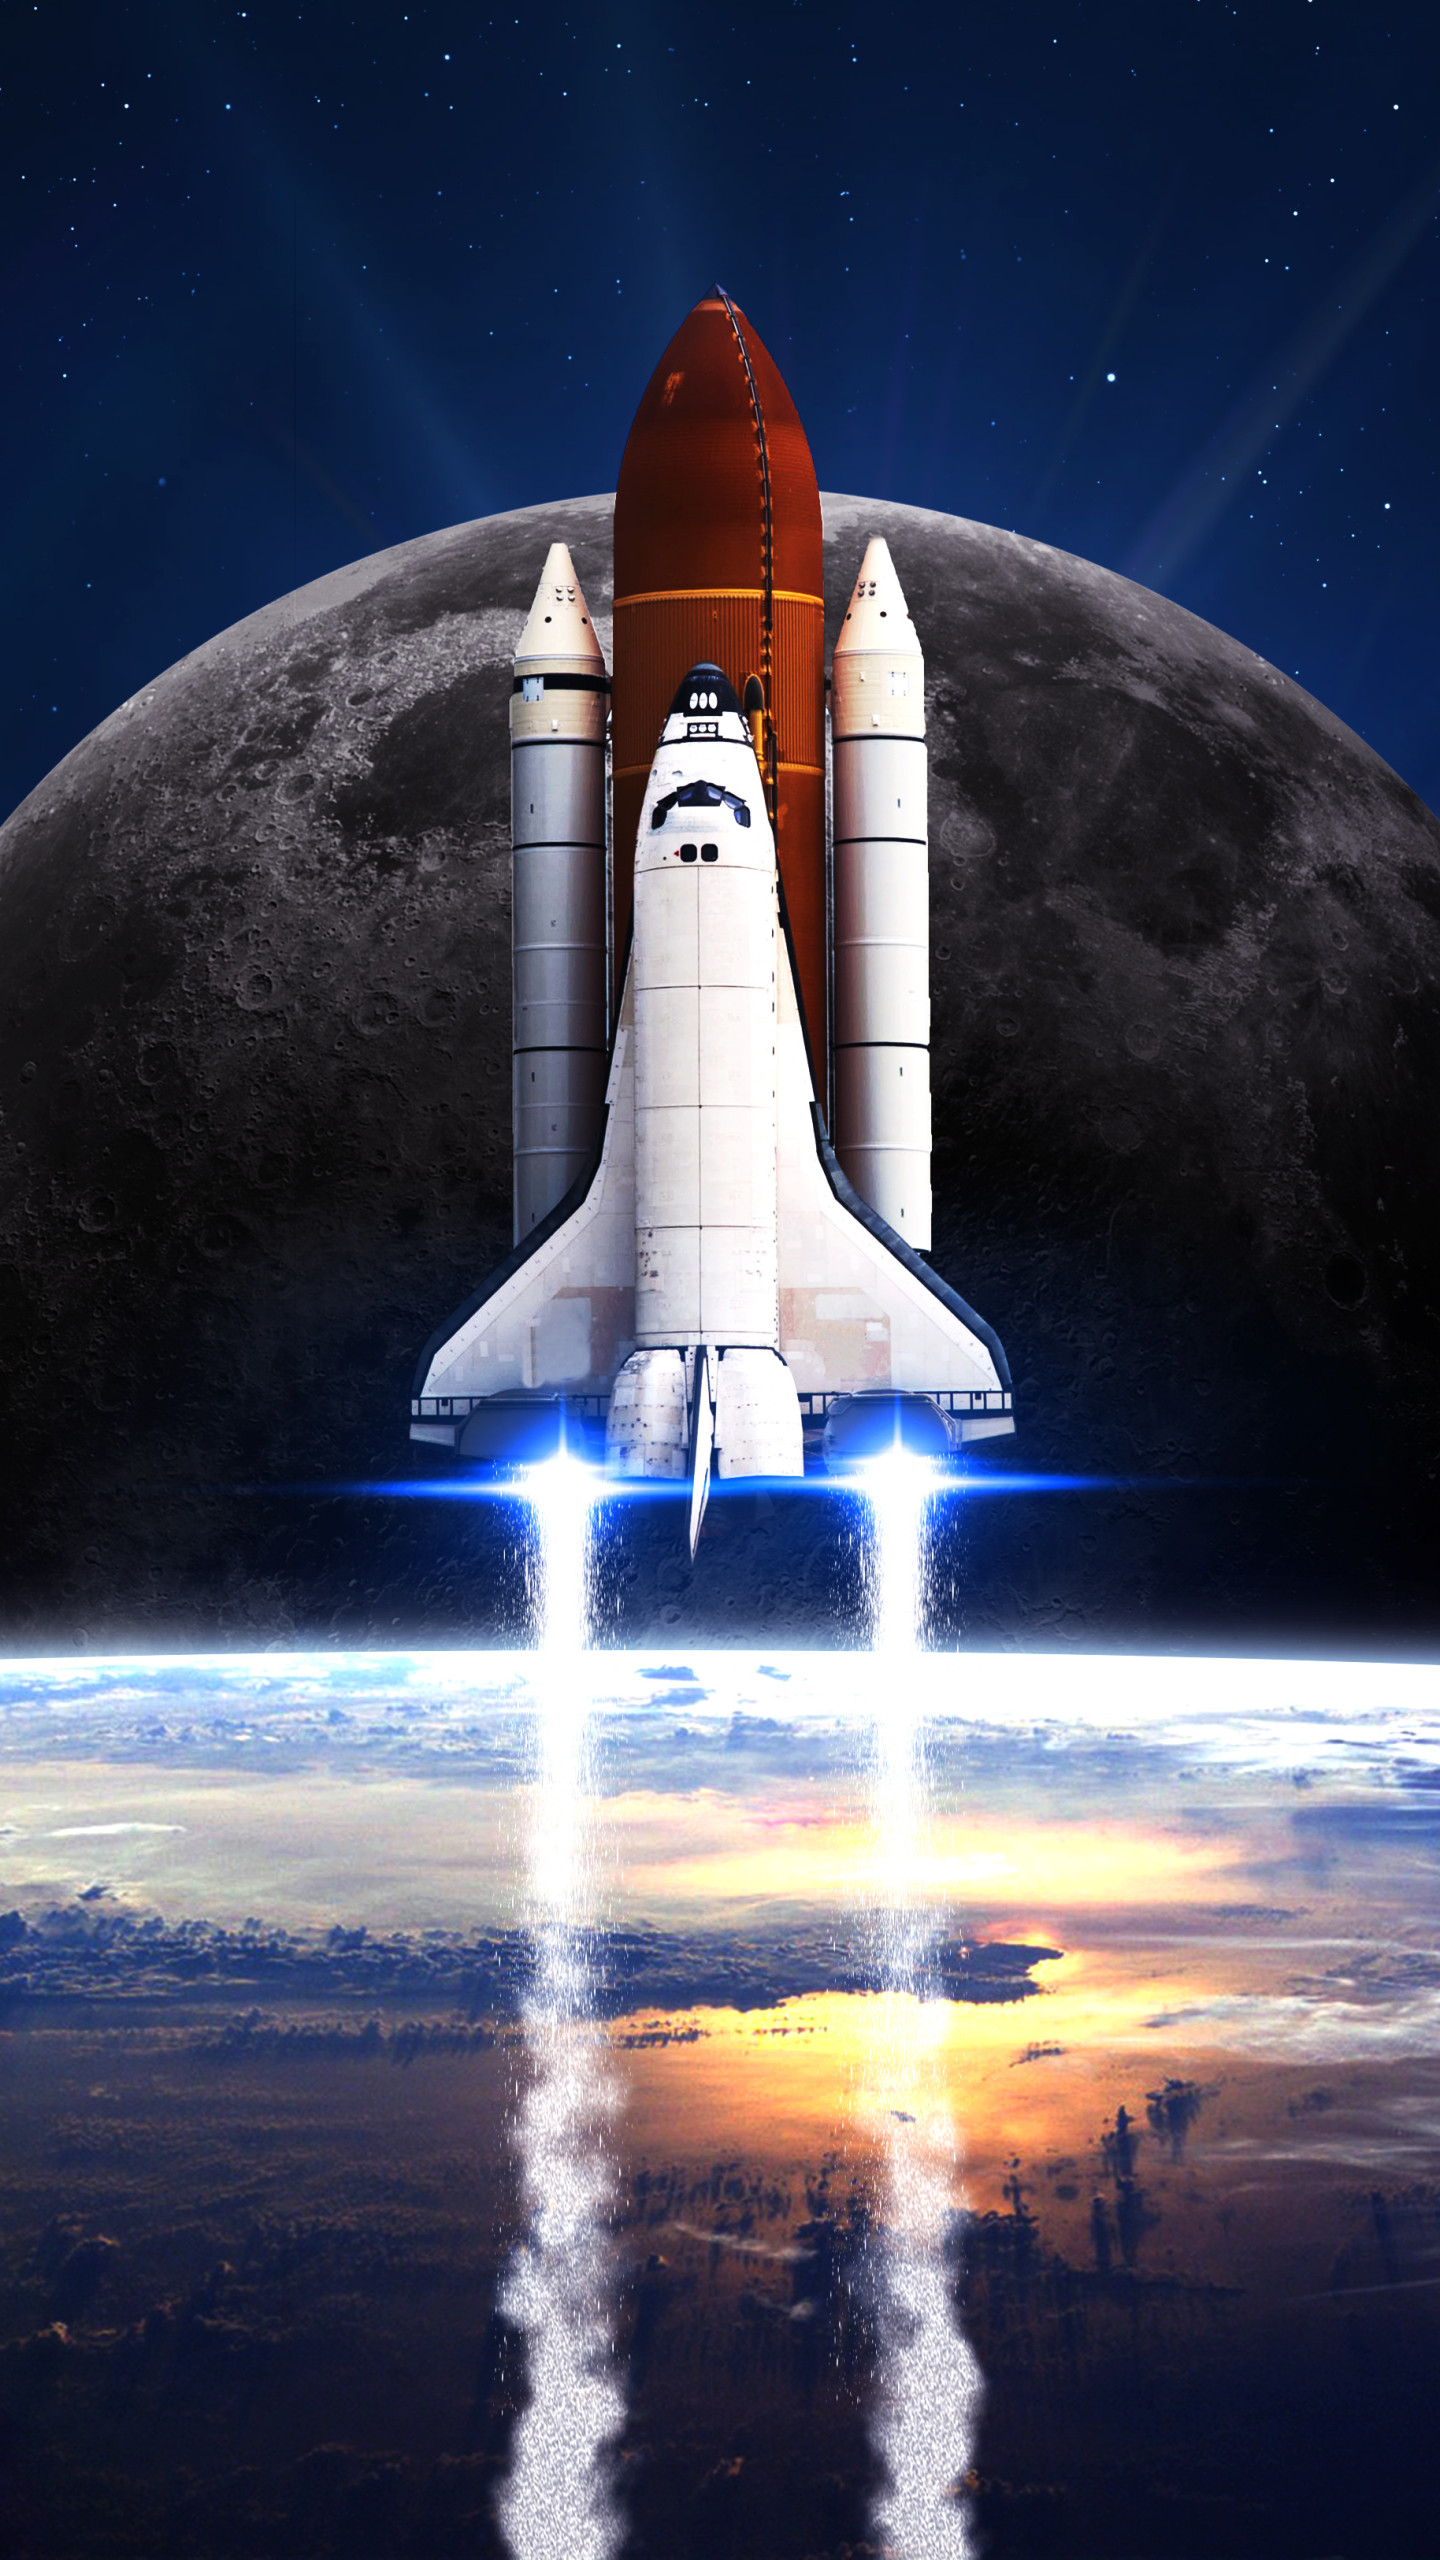 Space shuttle wallpapers 74 images - Nasa space shuttle wallpaper ...